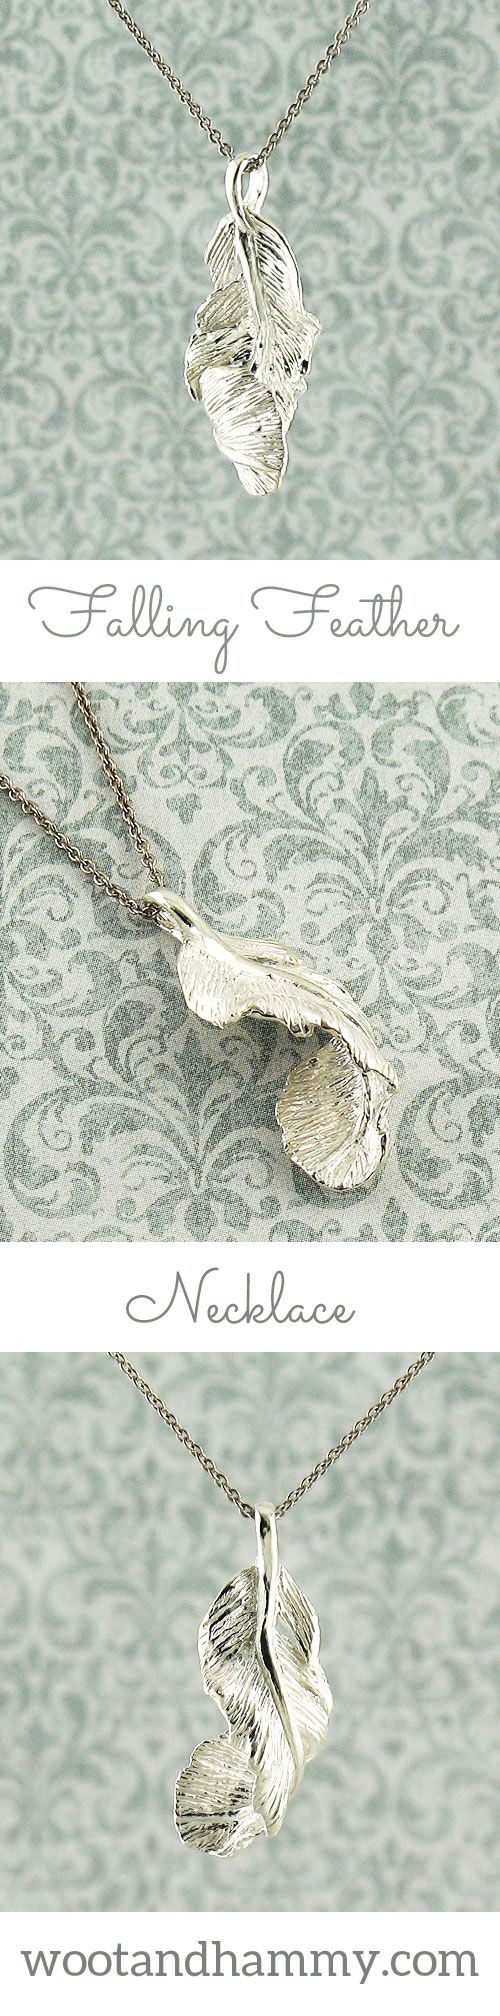 Feathers are sometimes seen as messages from angels or loved ones who have passed on. A feather can suddenly fall from the sky, just at a moment when you might need comfort or encouragement that you are following the right path. 'Falling Feather' Necklace in sterling silver.